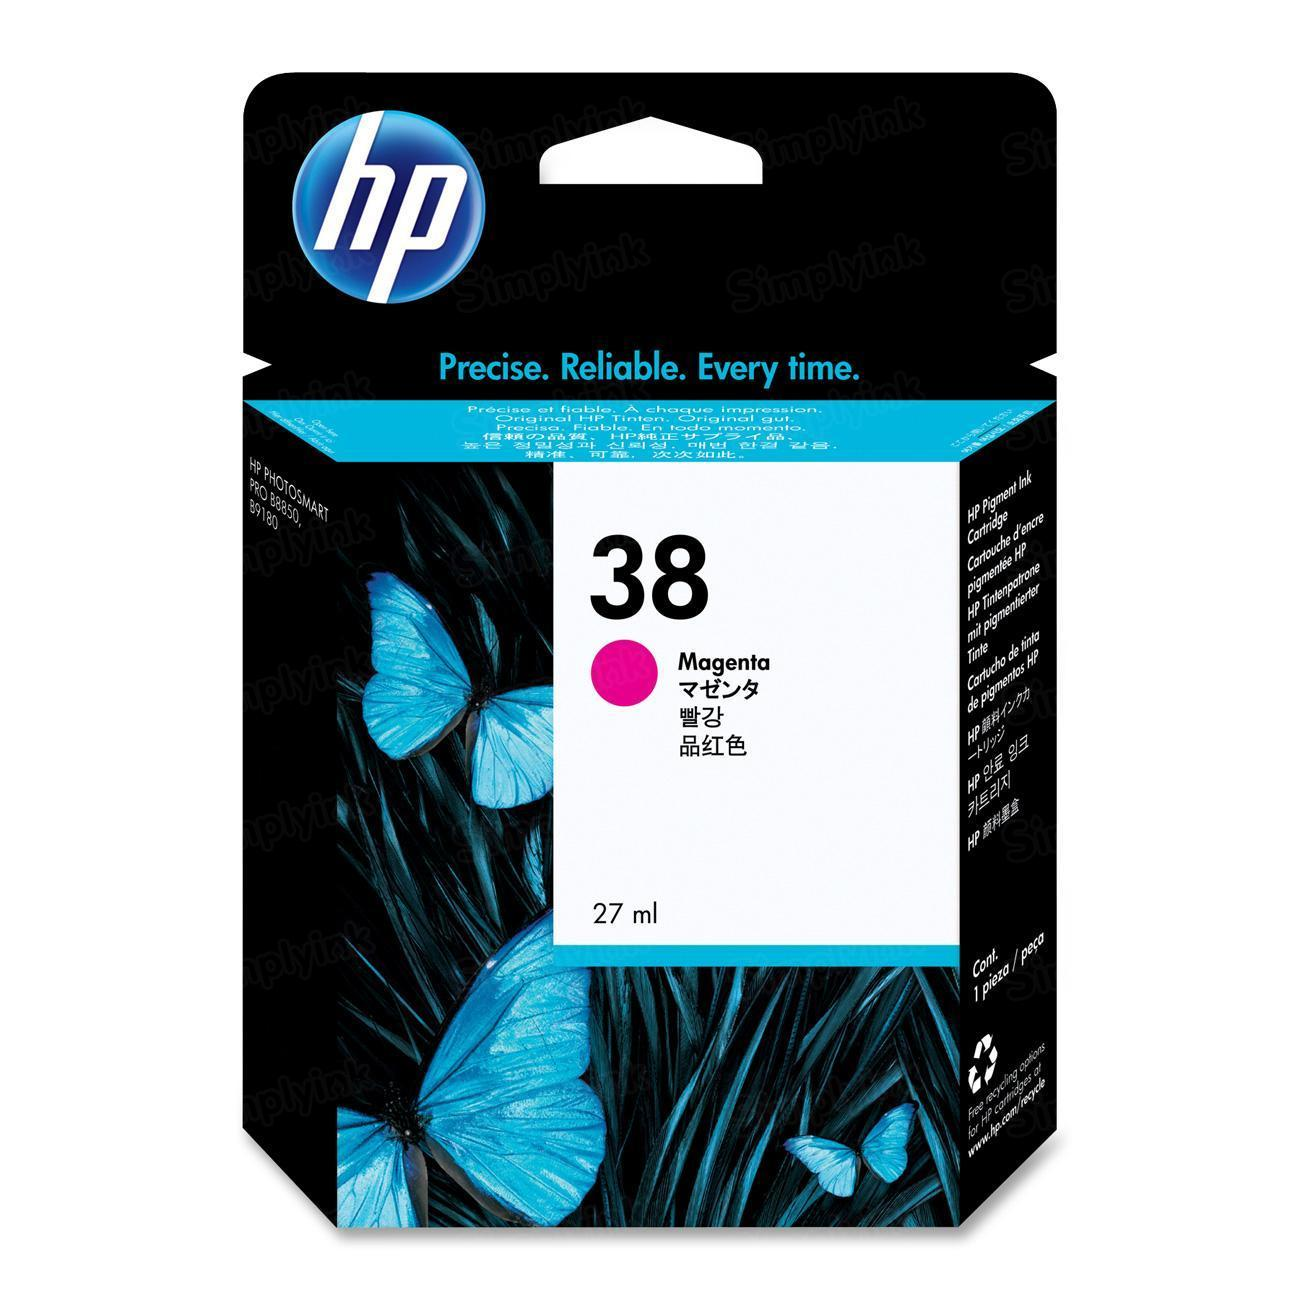 HP 38 Magenta Original Ink Cartridge C9416A